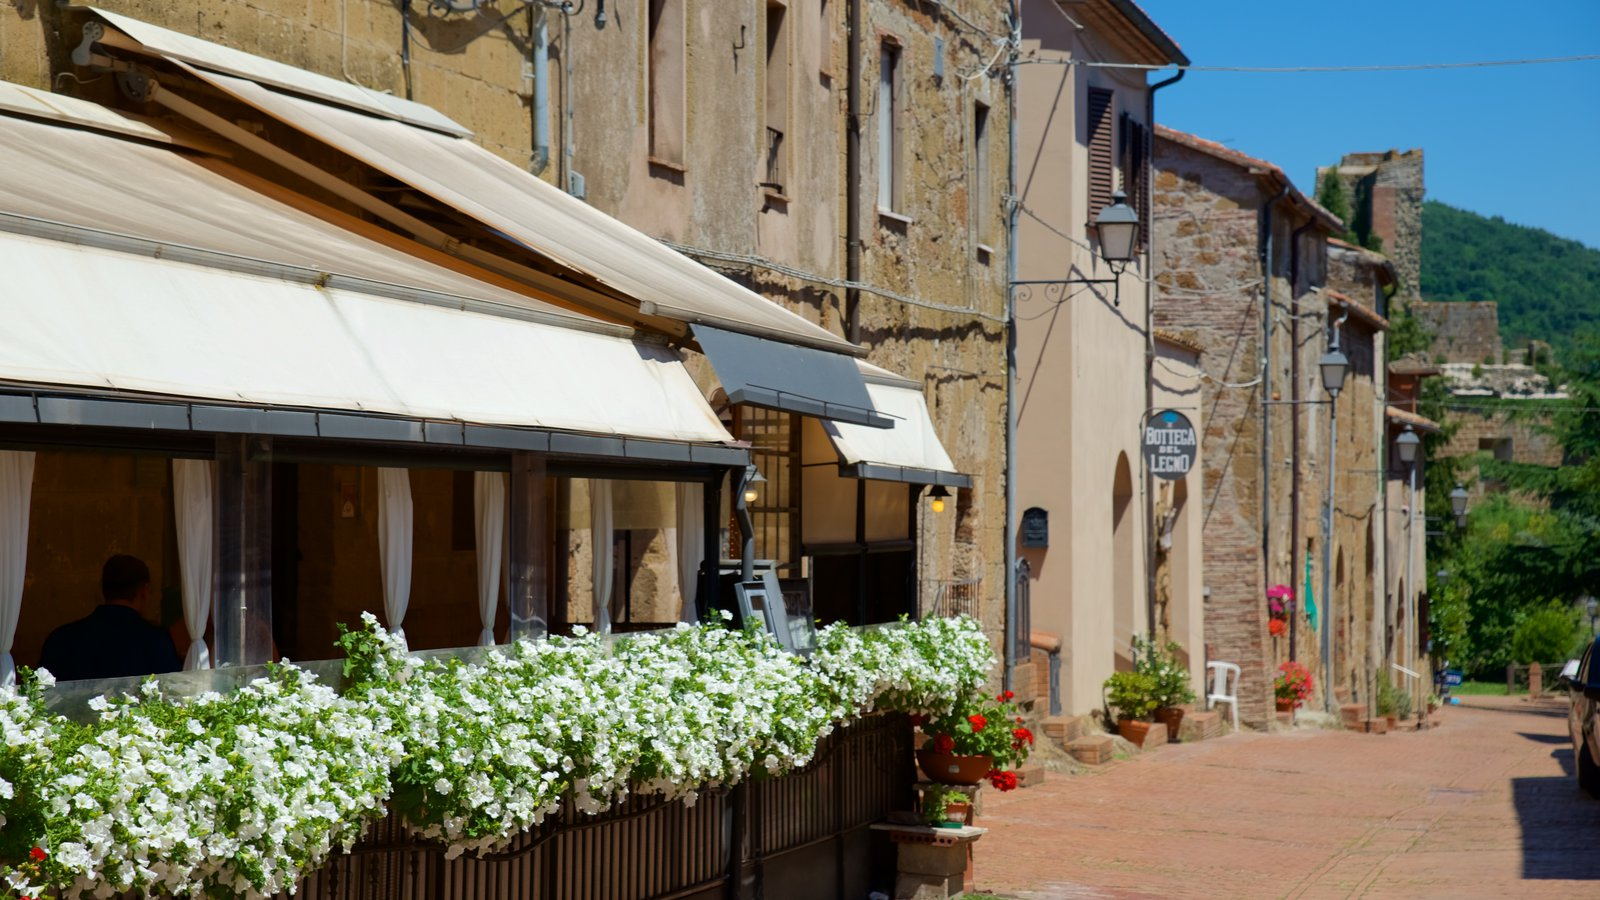 Sovana featuring a small town or village and flowers